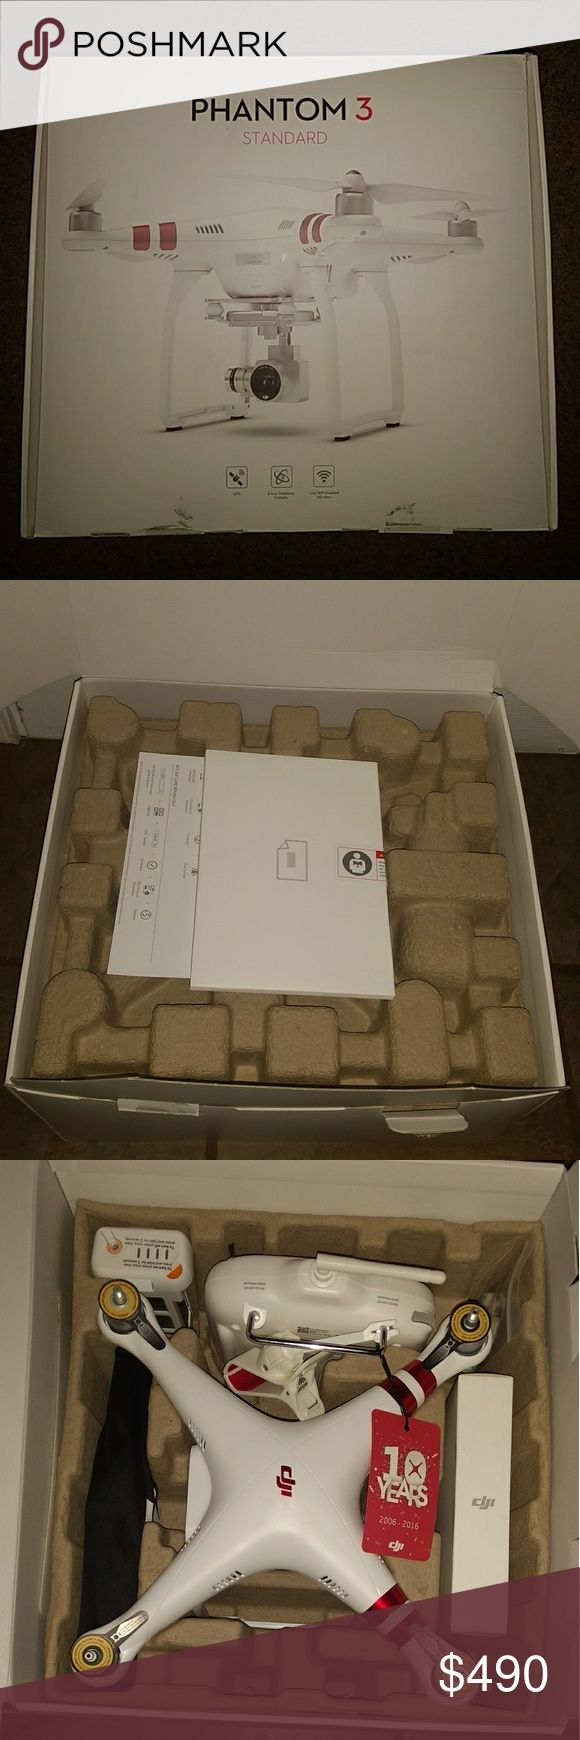 DJI Phantom 3 Standard with 2.7K Camera and 3-Axis DJI Phantom 3 Standard Quadcopter Drone with 2.7K Camera and 3-Axis Gimbal NEW in Factory box  Brand new in box, comes with all standard pieces from manufacturer. Purchased from Target. DJI Phantom 3 Other